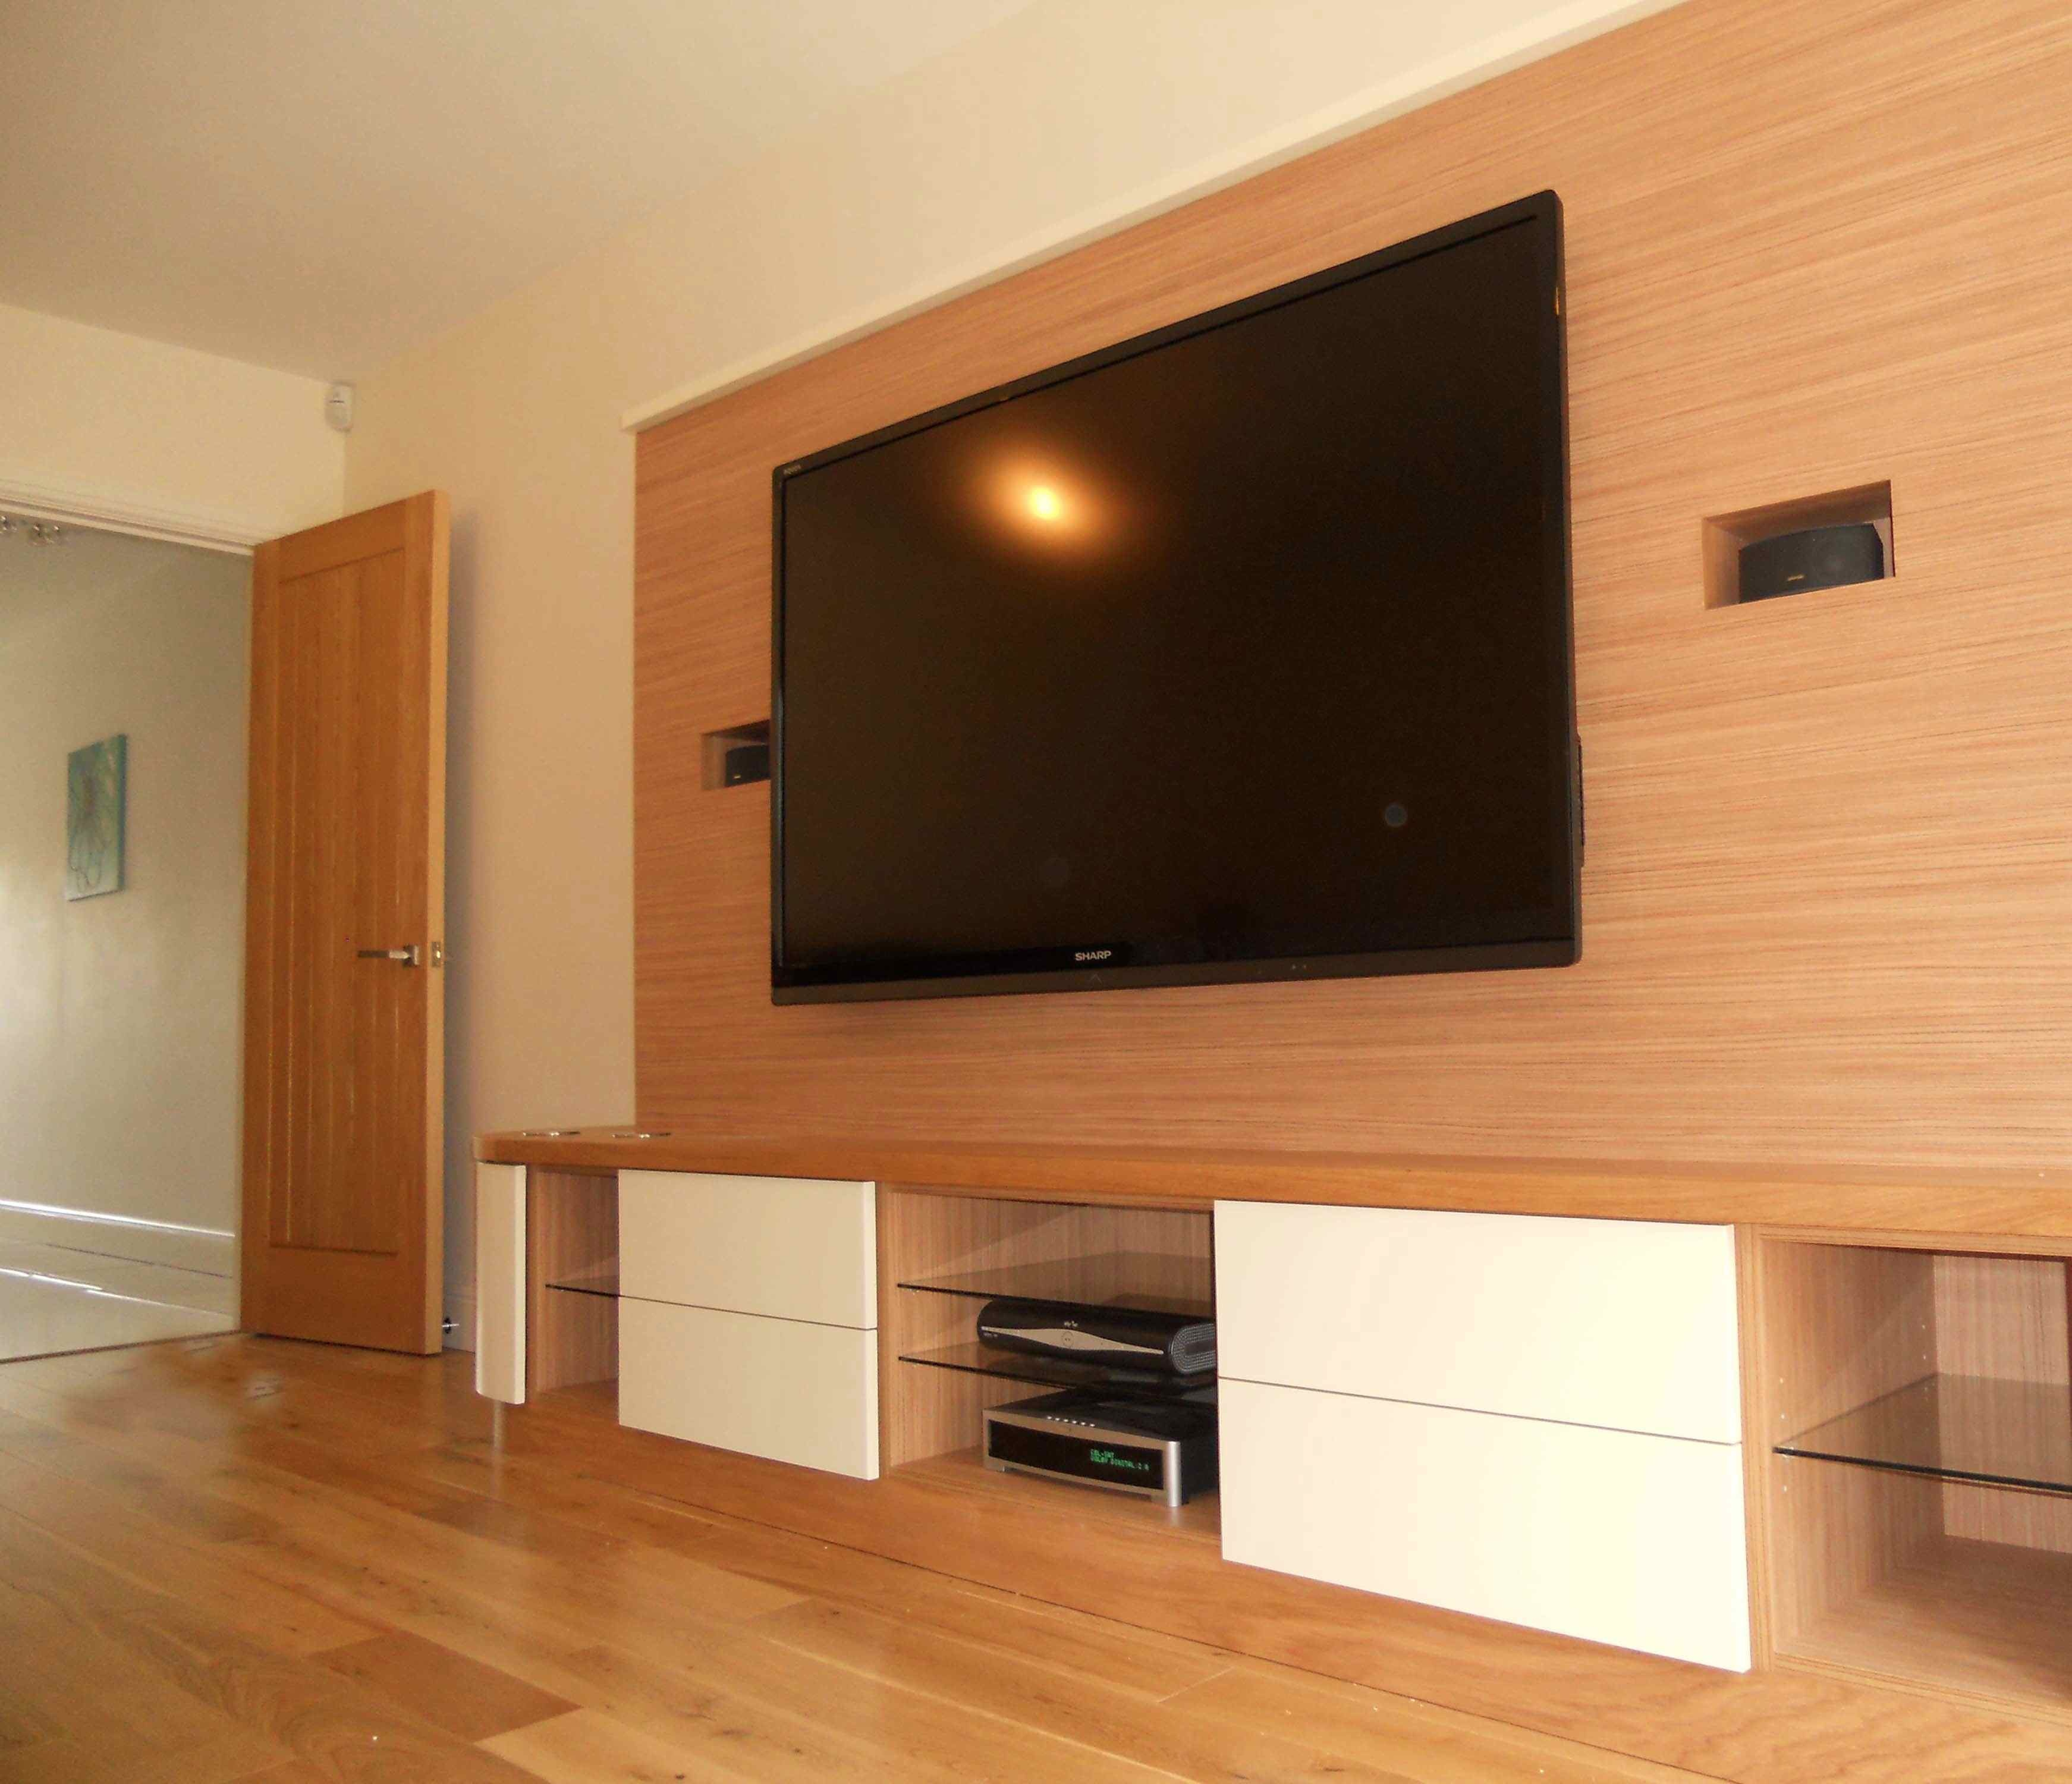 Large Wood Wall Covering Idea For Flat Tv And Cabinet